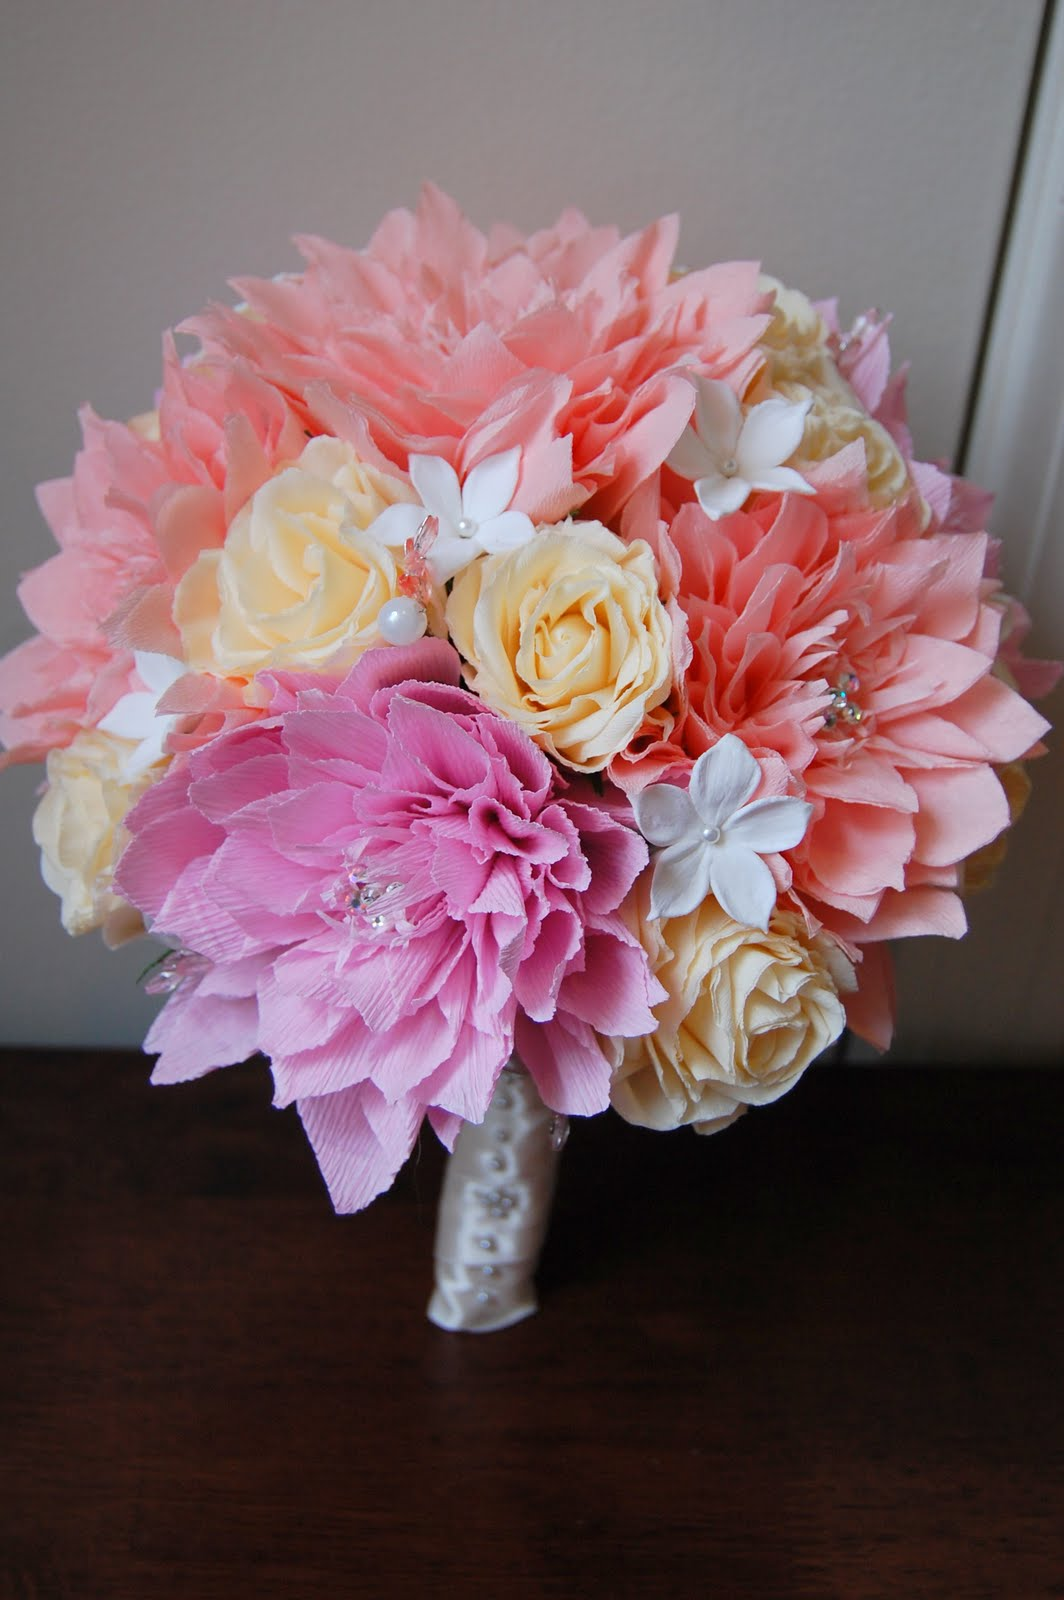 Pink dahlia paper flower wedding bouquet paper flowers just when i have bouquet to photograph new england gives me the gloomiest day to photograph it i guess i need to figure out a way to get some great lights izmirmasajfo